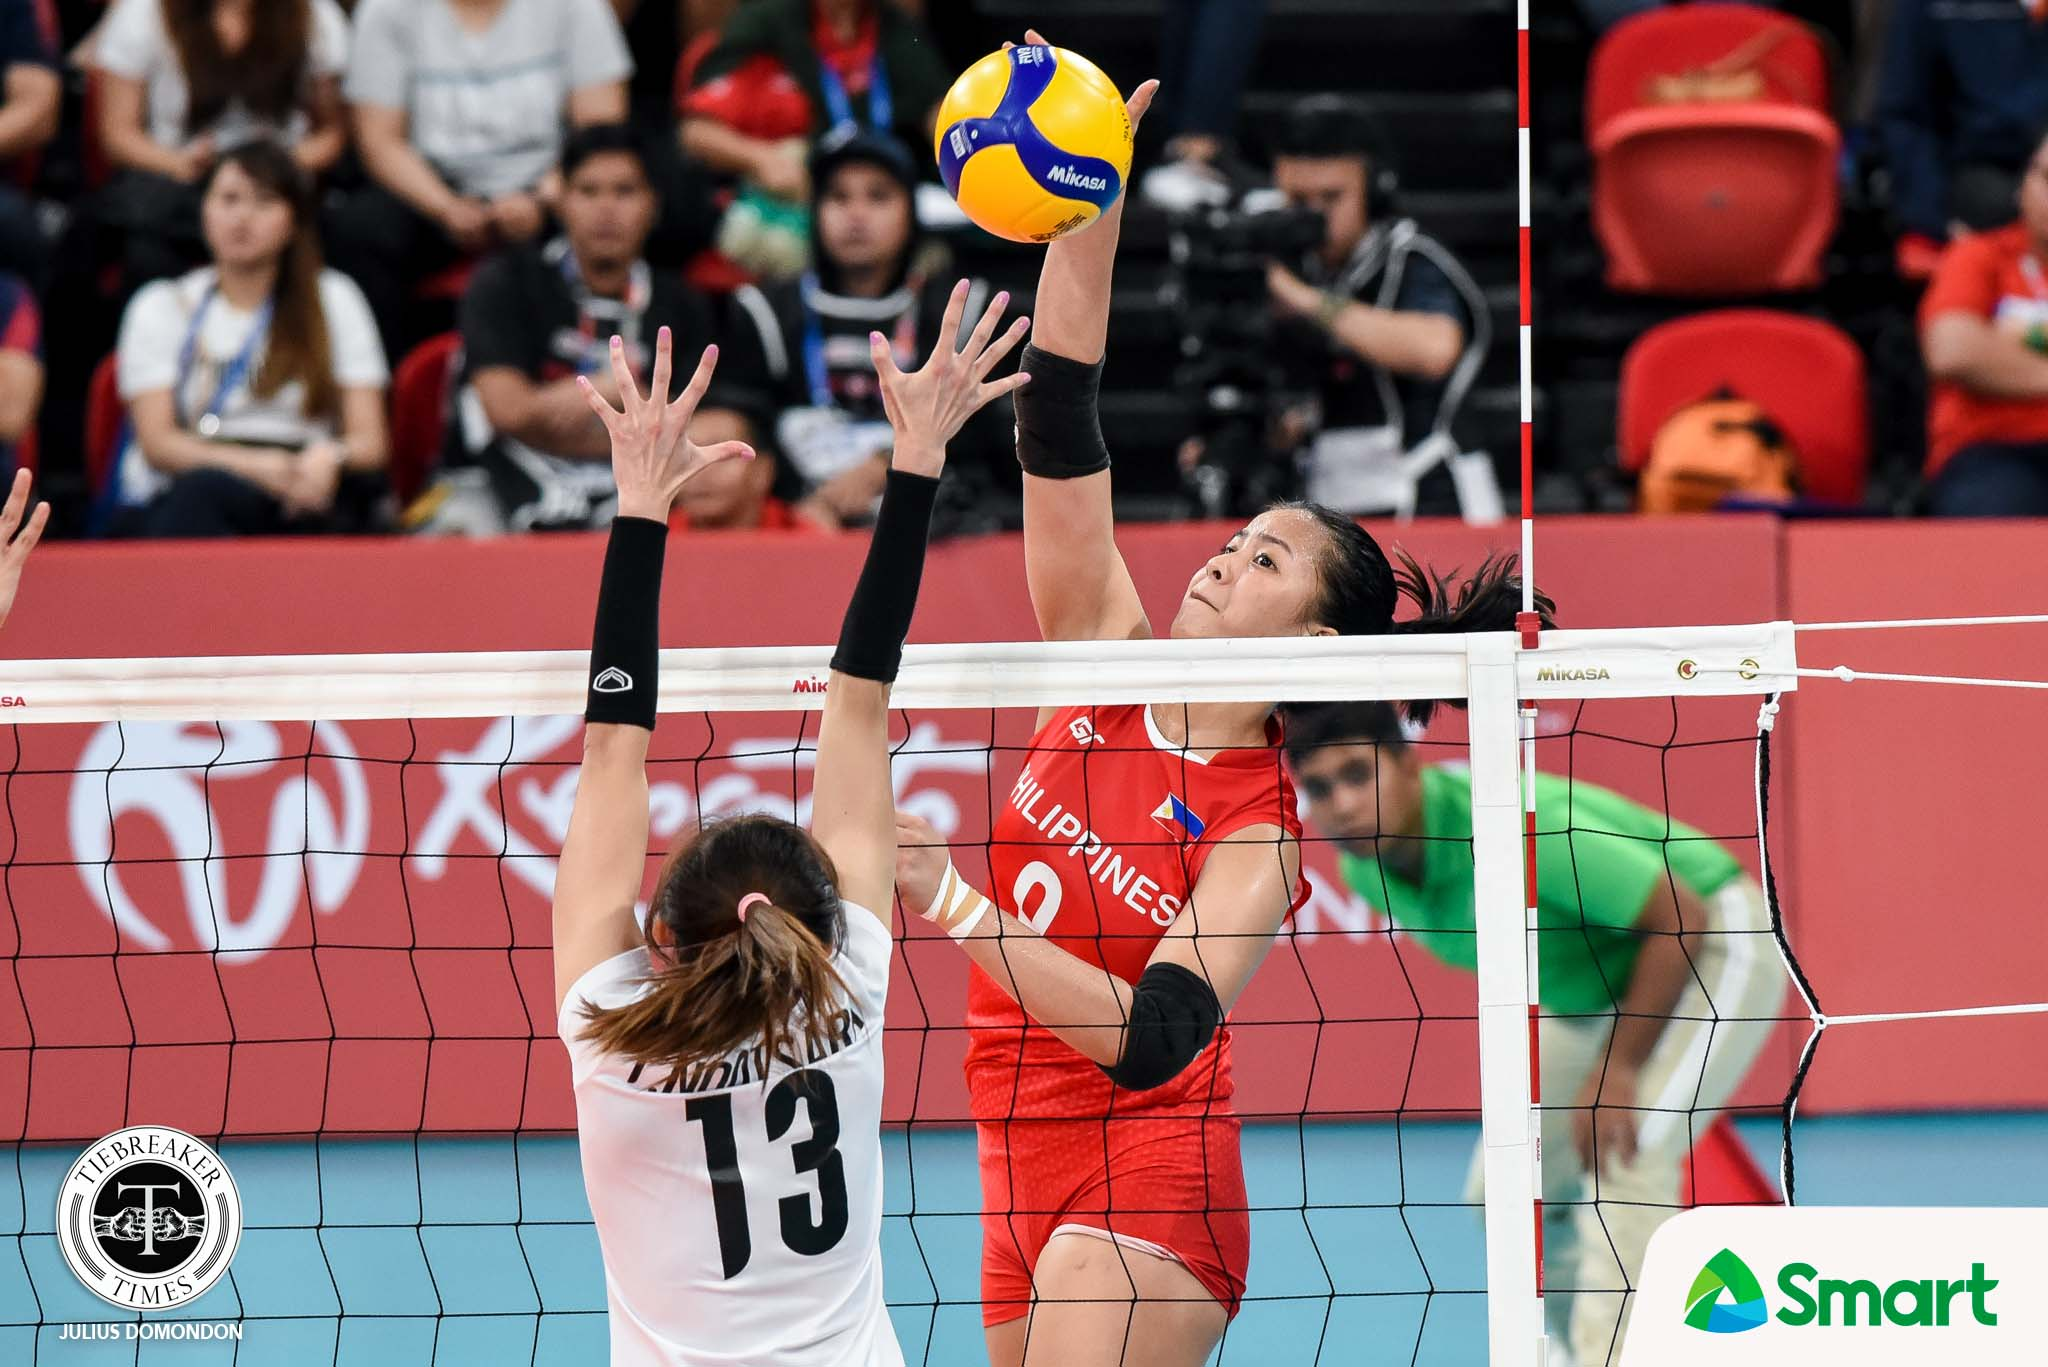 Tiebreaker Times After PWNVT debacle, LVPI seeks to 'find common ground' for PVL, PSL 2019 SEA Games News PSL PVL Volleyball  Philippine Women's National Volleyball Team 2020 PVL Season 2020 PSL Season 2019 SEA Games - Volleyball 2019 SEA Games